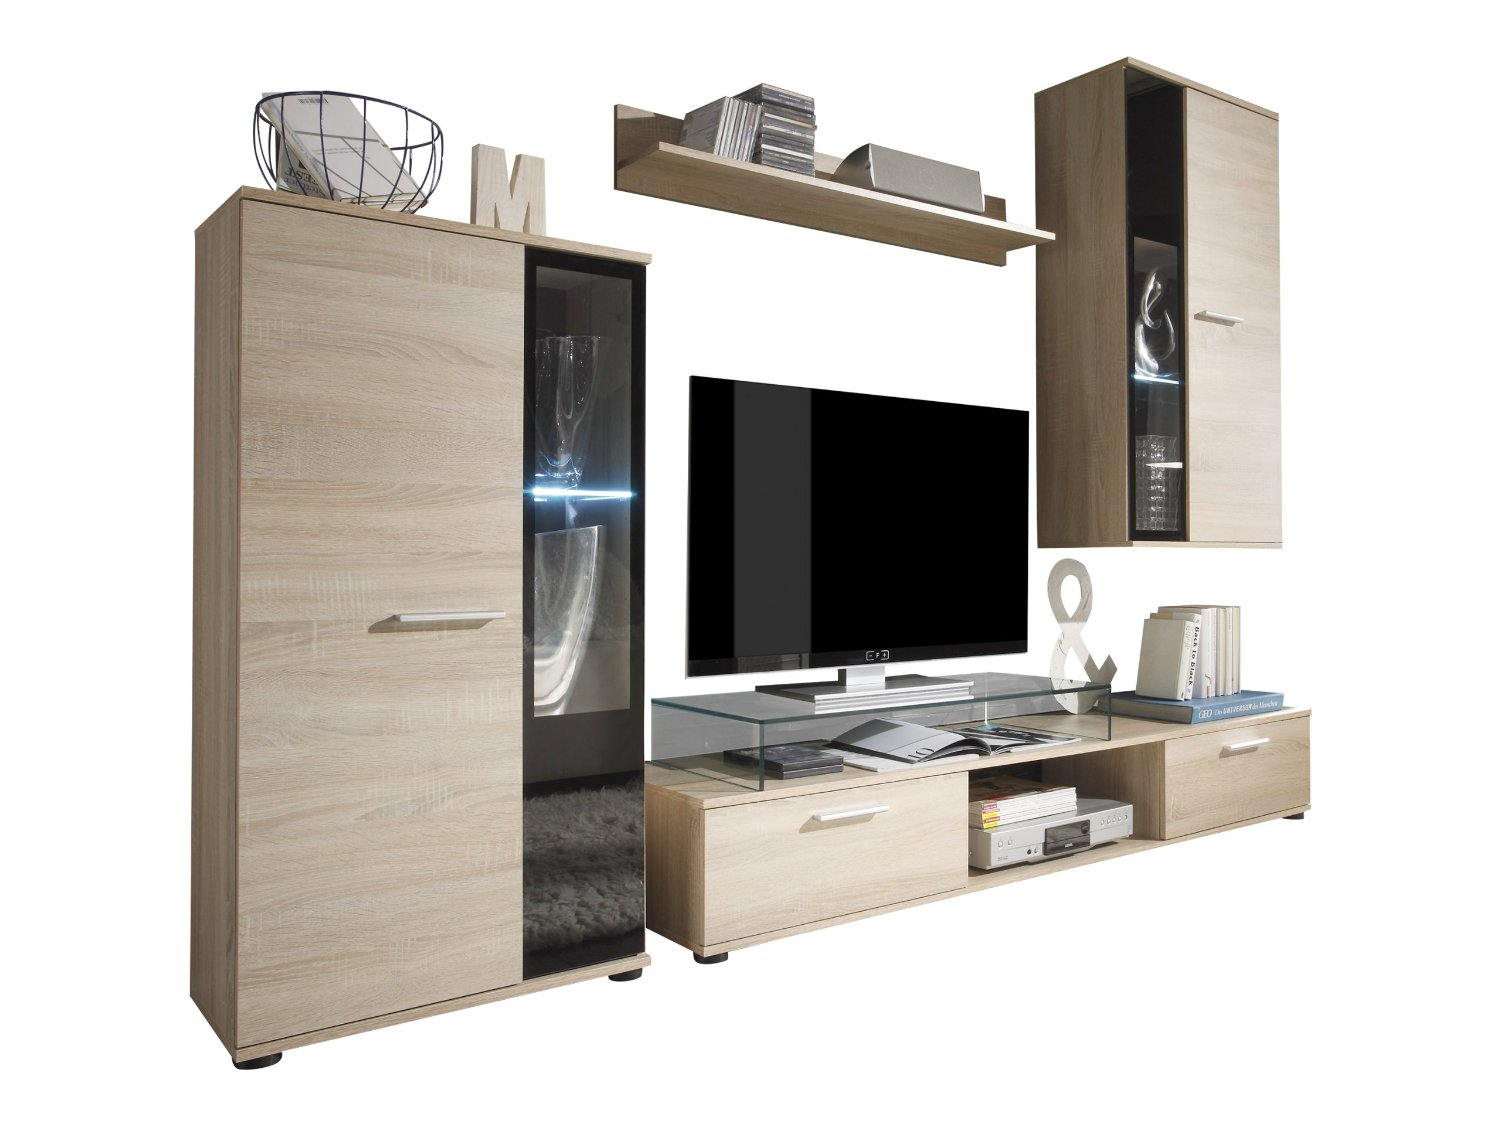 tv wand test vergleich top 10 im juli 2018. Black Bedroom Furniture Sets. Home Design Ideas